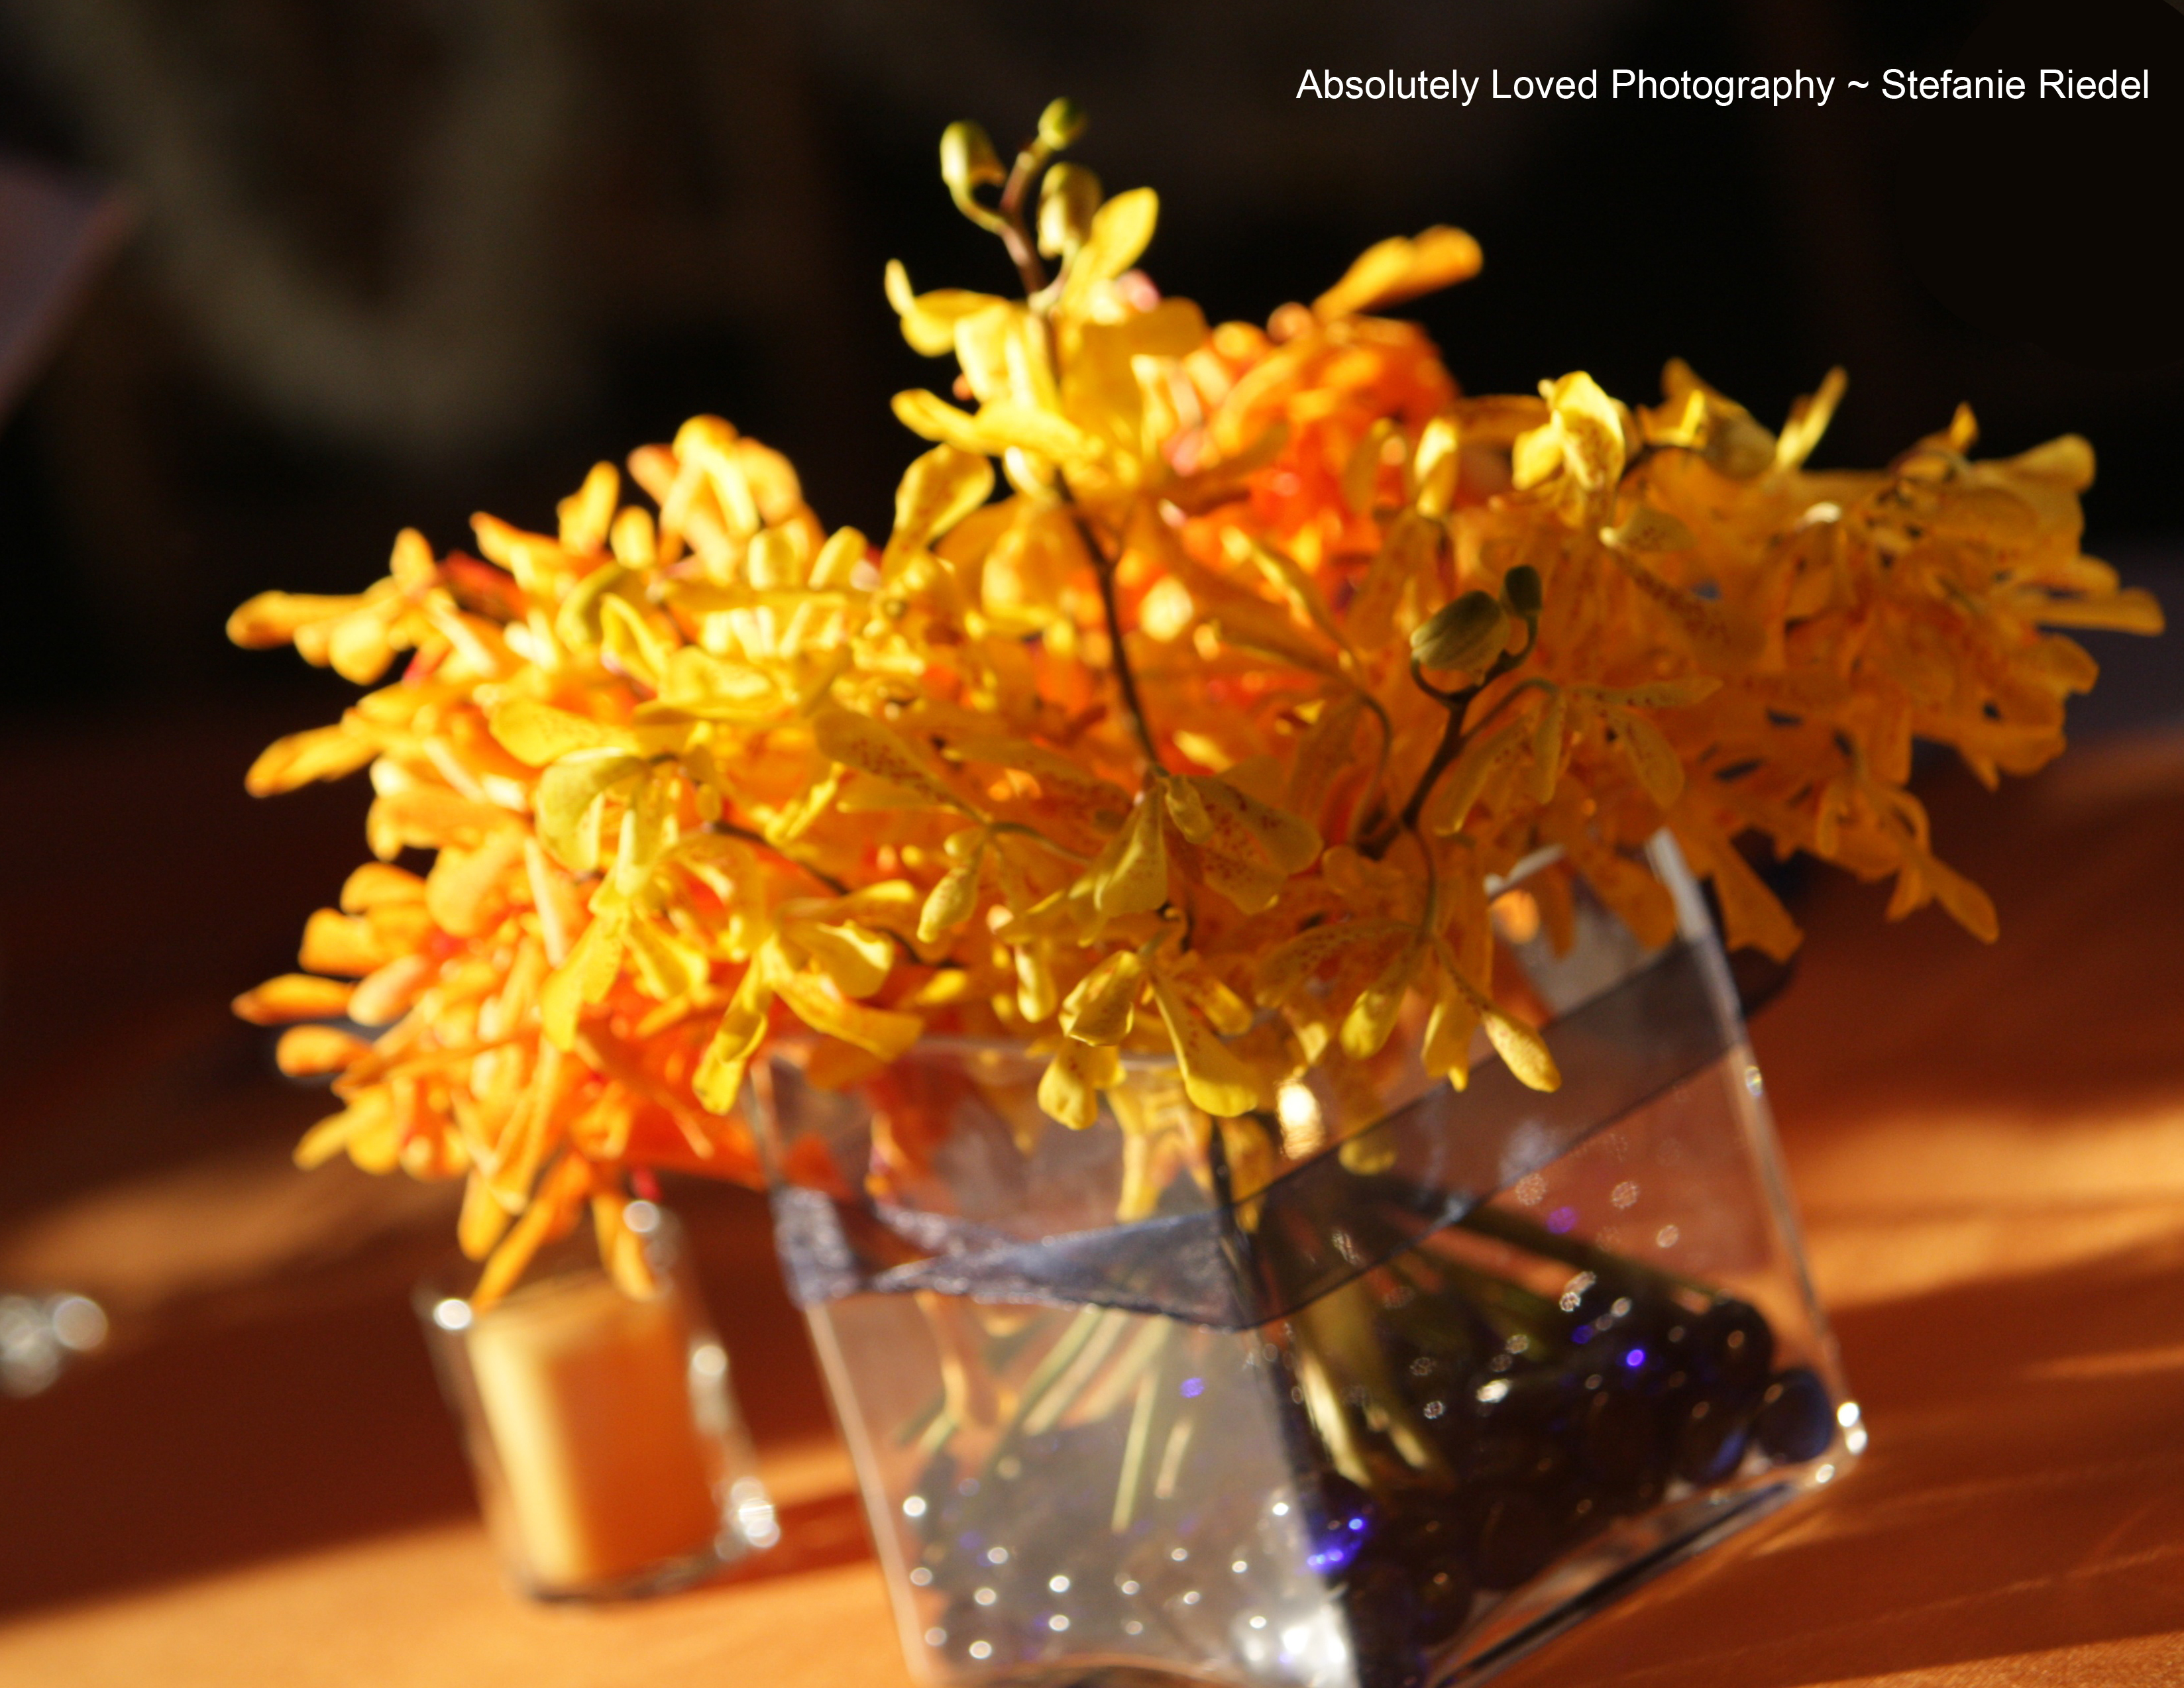 Ceremony, Reception, Flowers & Decor, Photography, yellow, orange, red, And, Anna, 808, Stefanie, Riedel, Wwwabsolutelylovedcom, Loved, Absolutely, 779, 1895